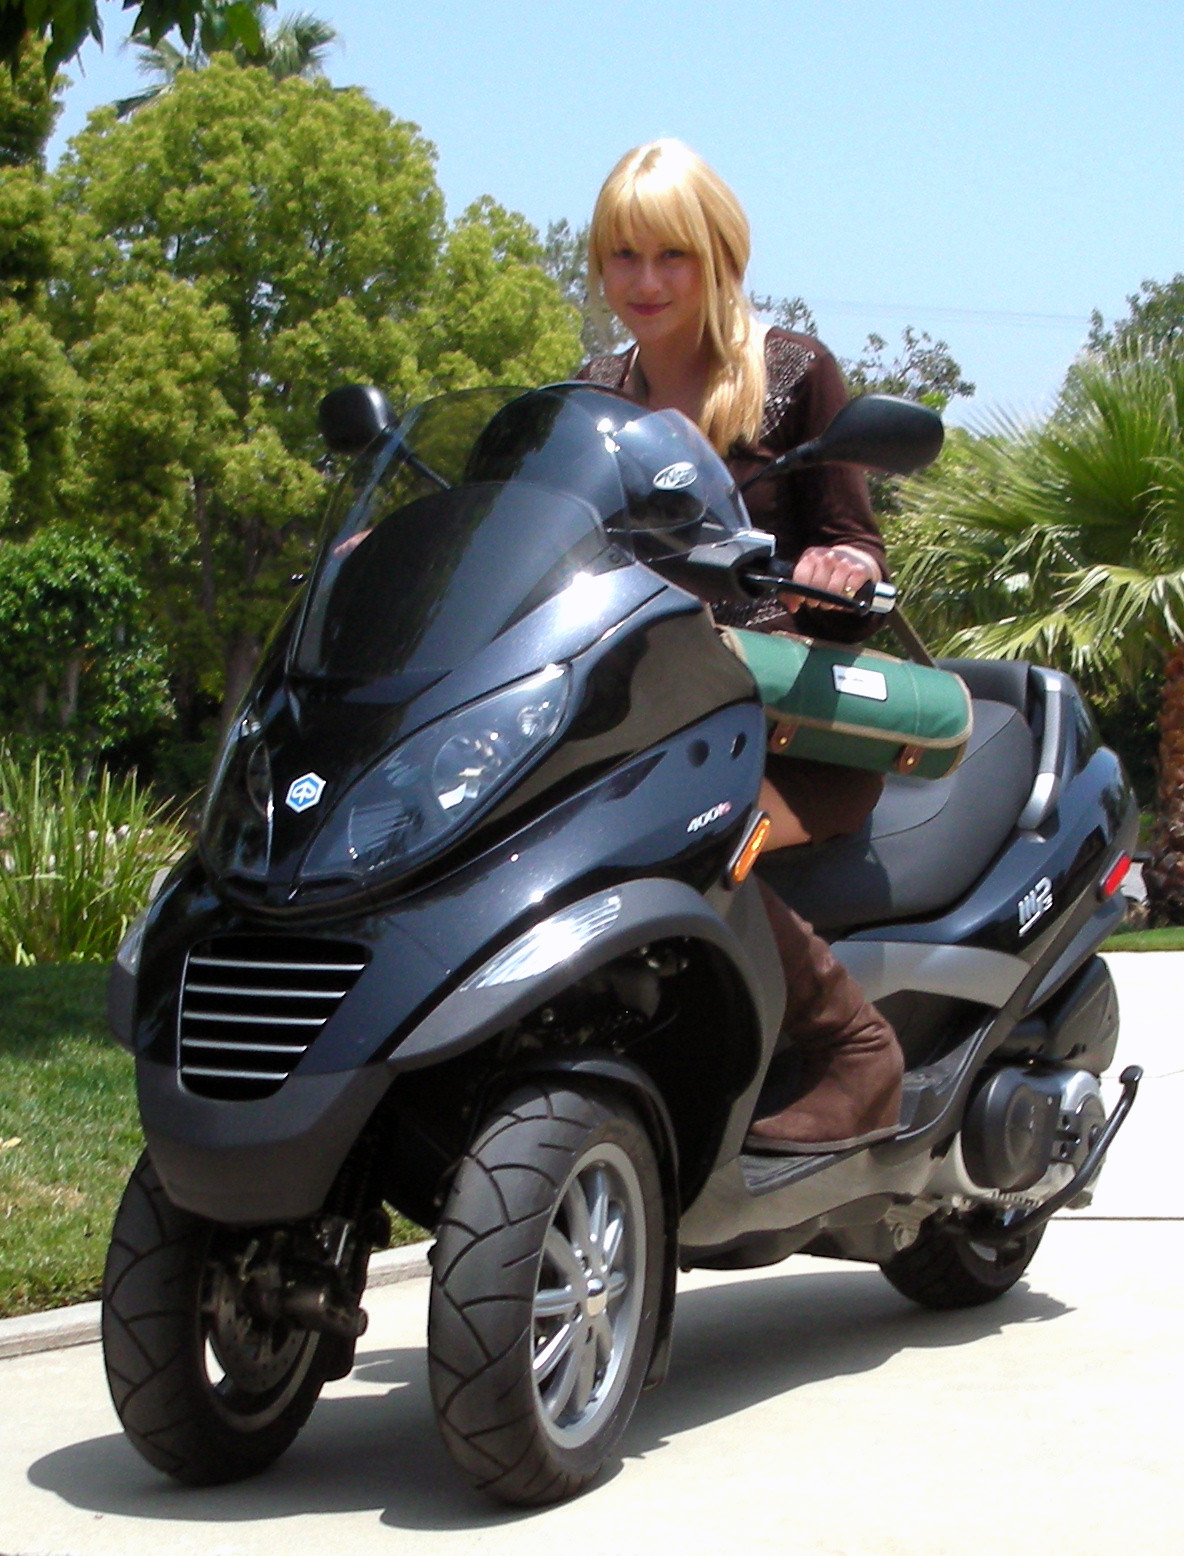 piaggio mp3 ridingirls. Black Bedroom Furniture Sets. Home Design Ideas